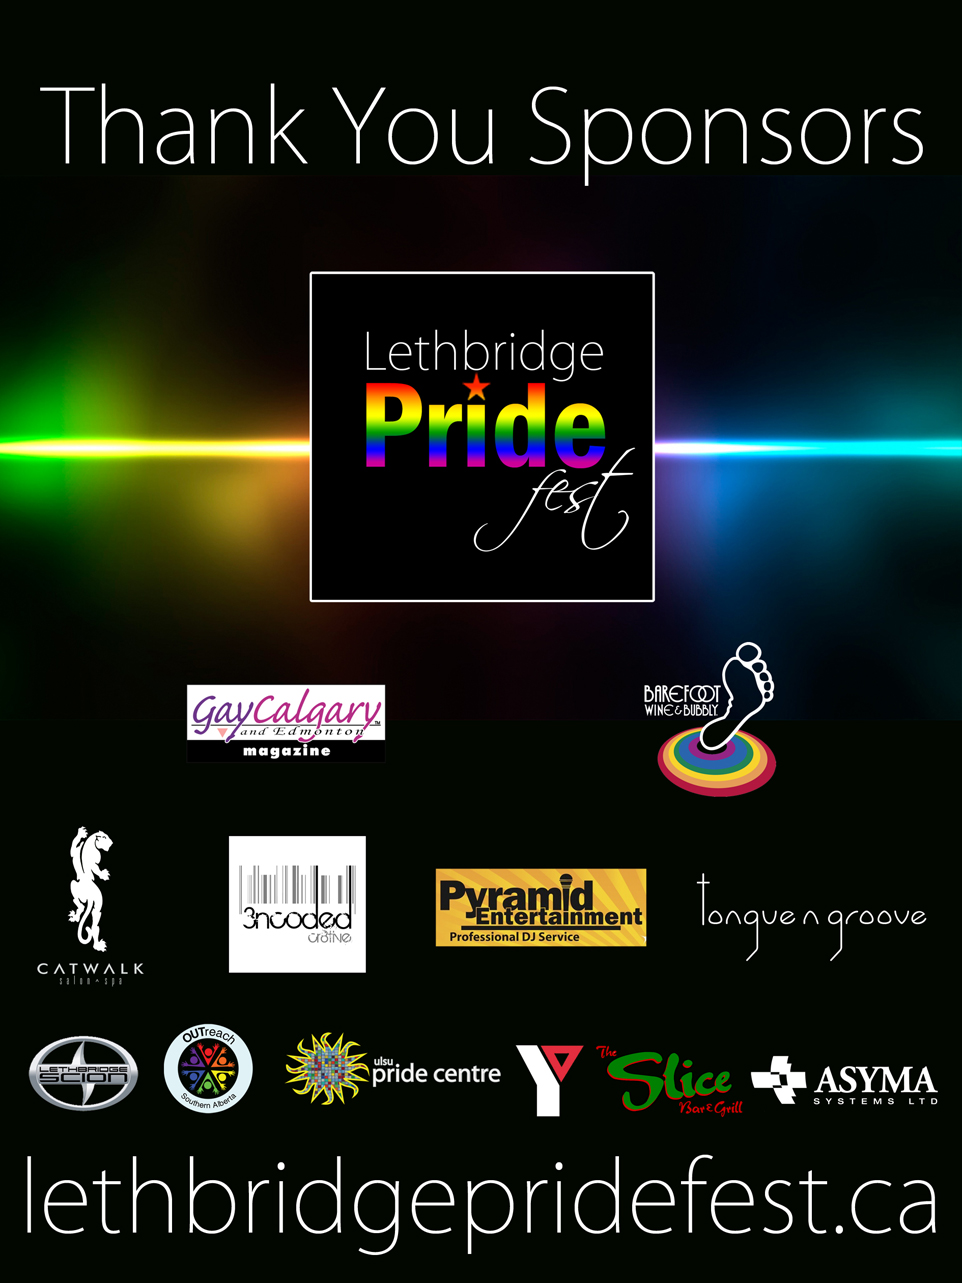 Lethbridge Pride Sponsor Board